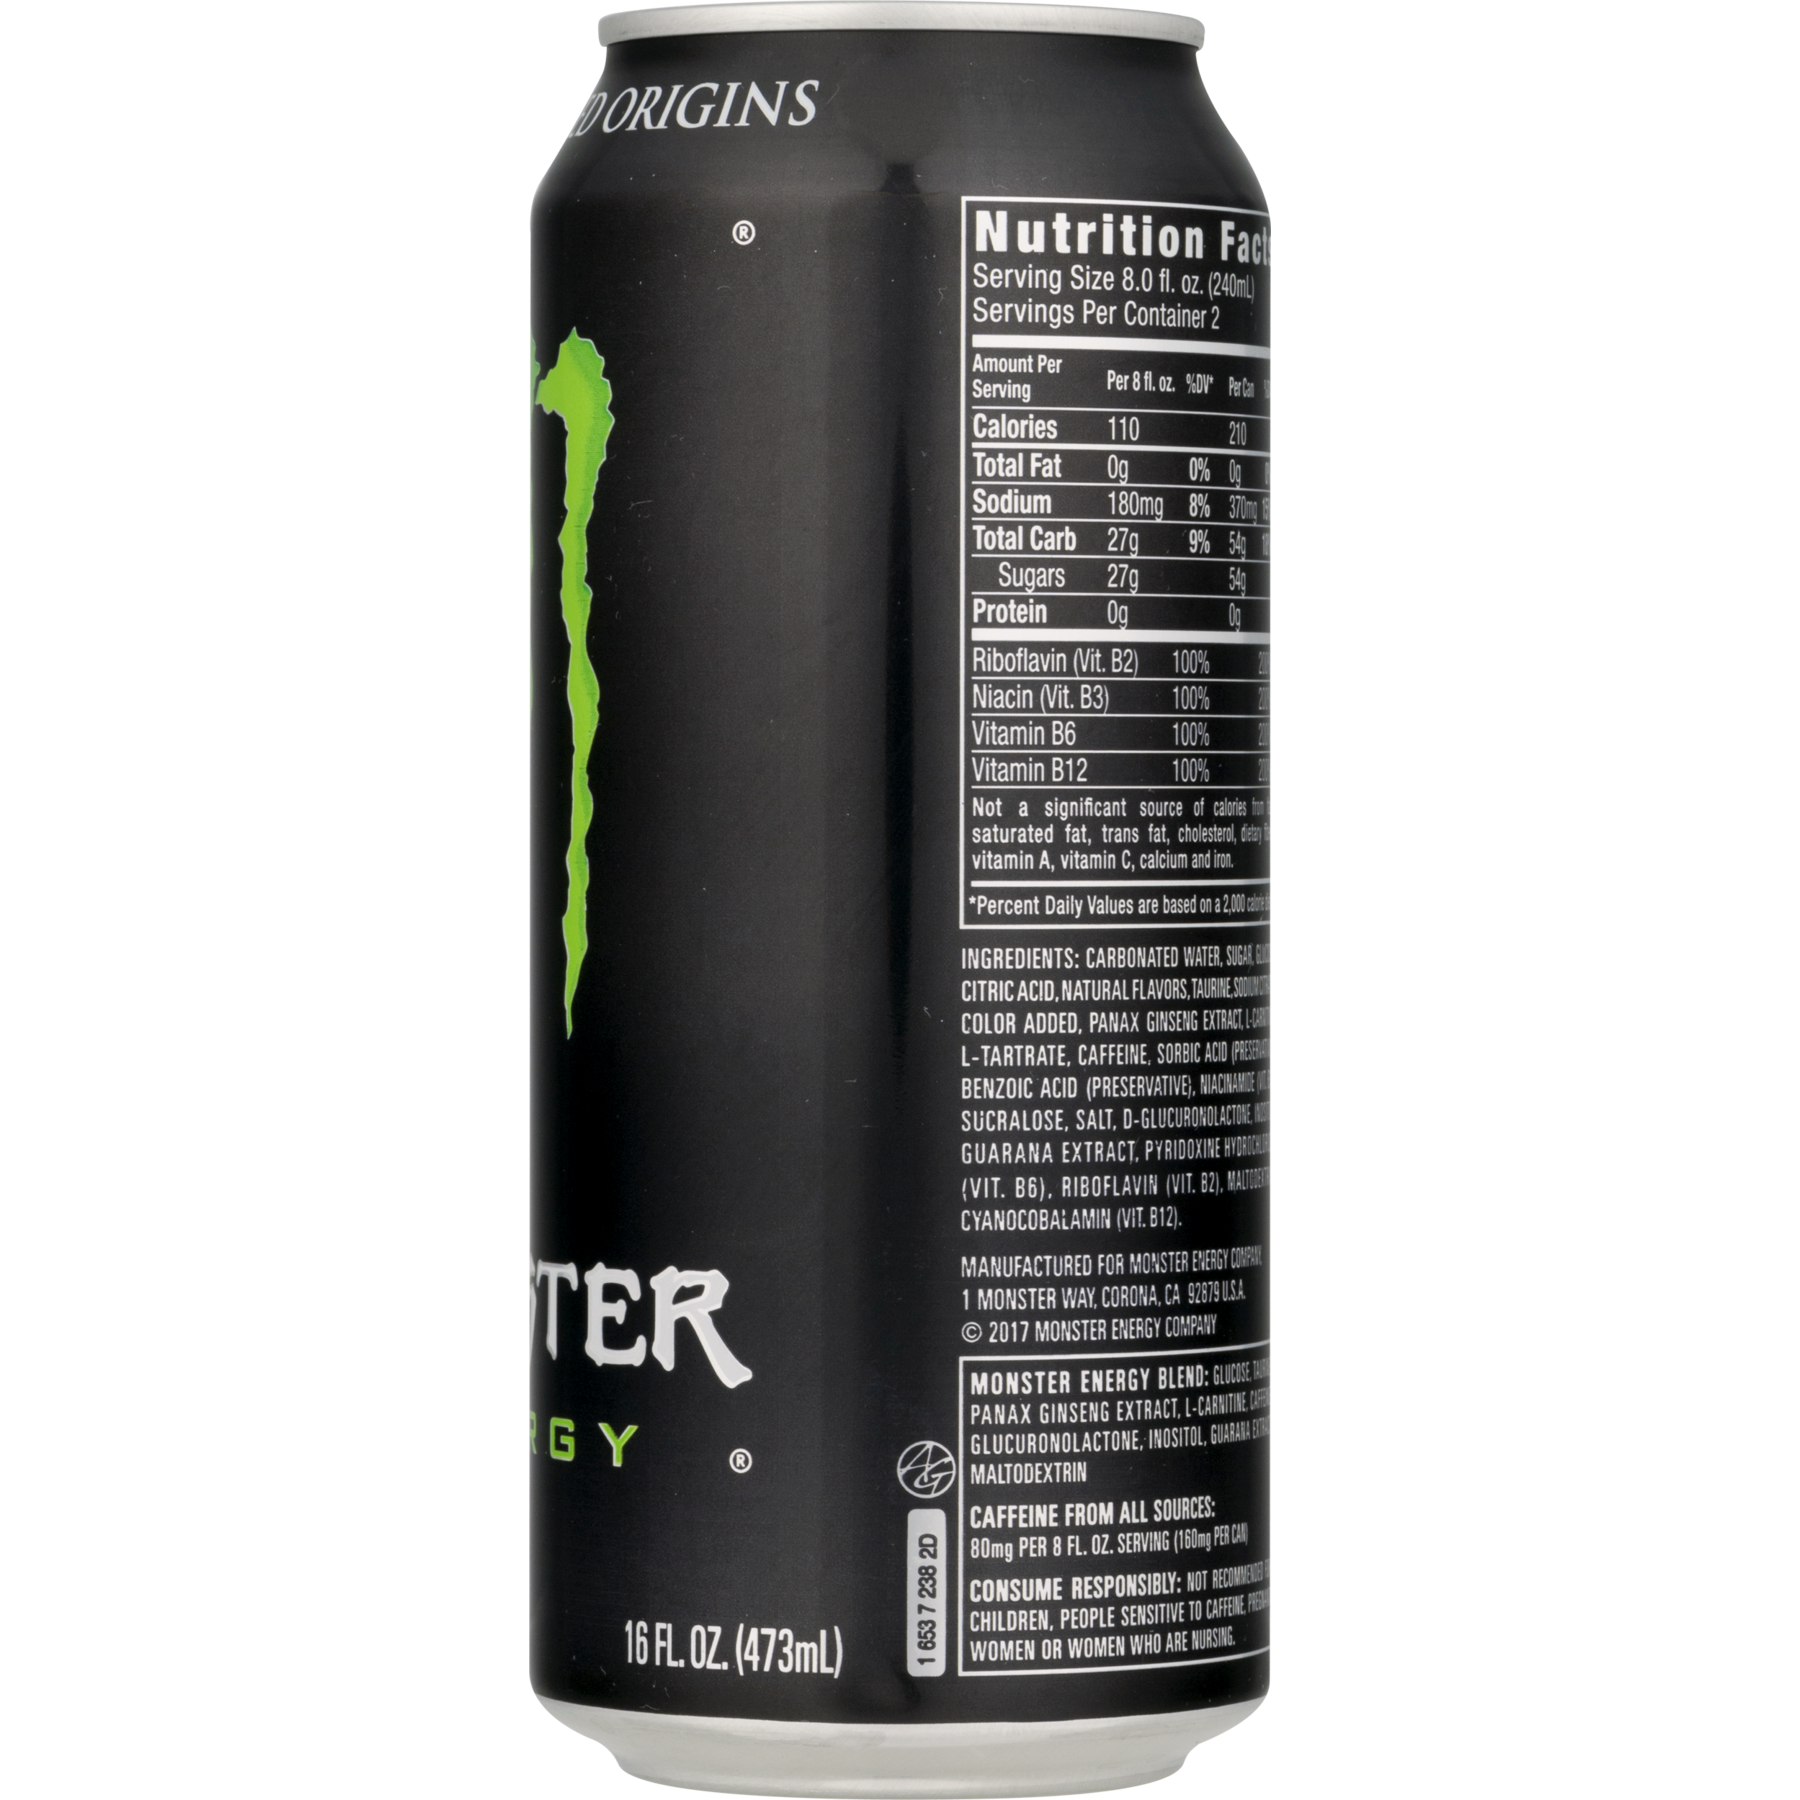 Monster Energy Drink Nutritional Information  Ace Energy. Types Of Small Cell Lung Cancer. Dissociative Identity Disorder Treatment Centers. Rick Scott Common Core Halo Wars Release Date. Medical Insurance Billing Web Designers India. Sharepoint Training Minneapolis. Internet Providers Hillsboro Oregon. Walgreens 11th And Locust Creating Html Email. Child Sponsorship Organizations